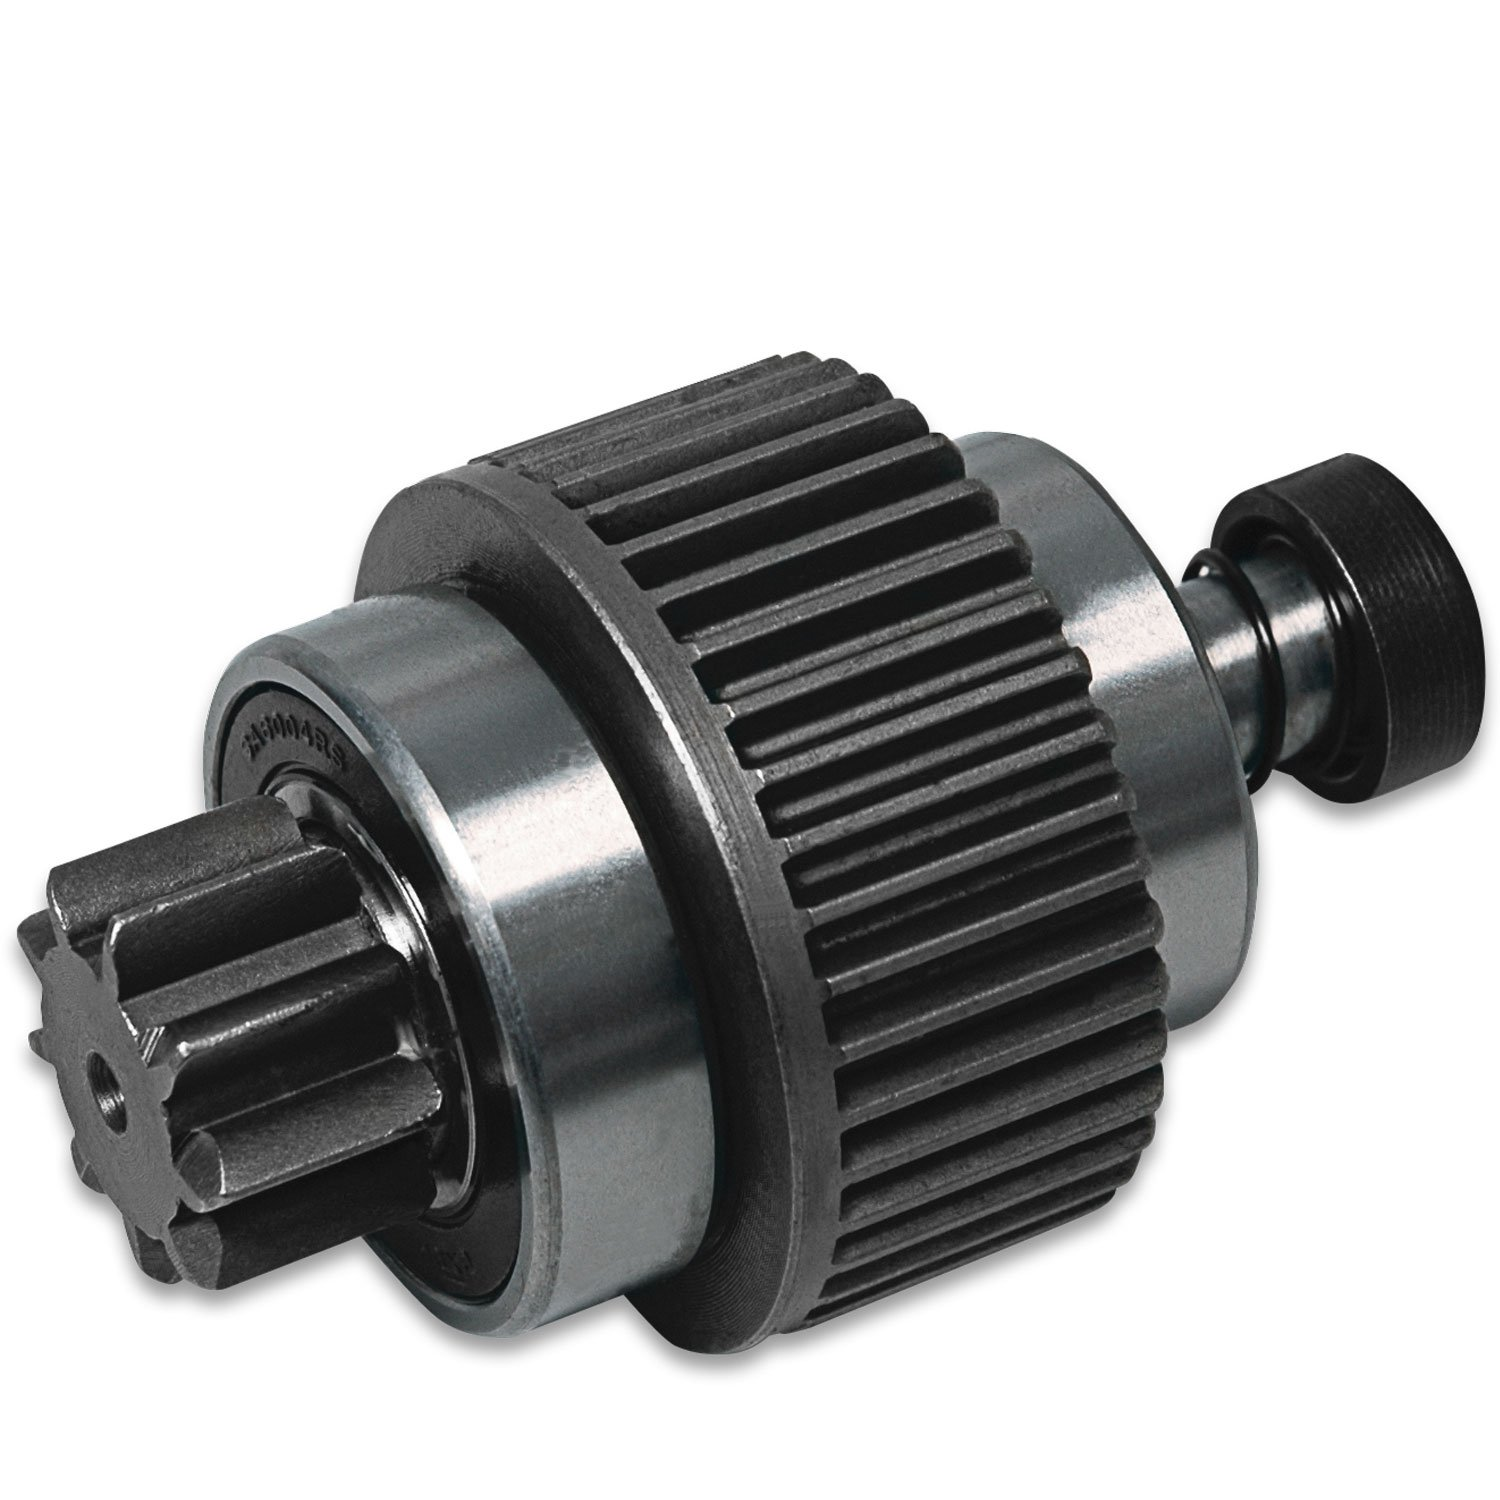 5089 - Gear Clutch Assembly Image